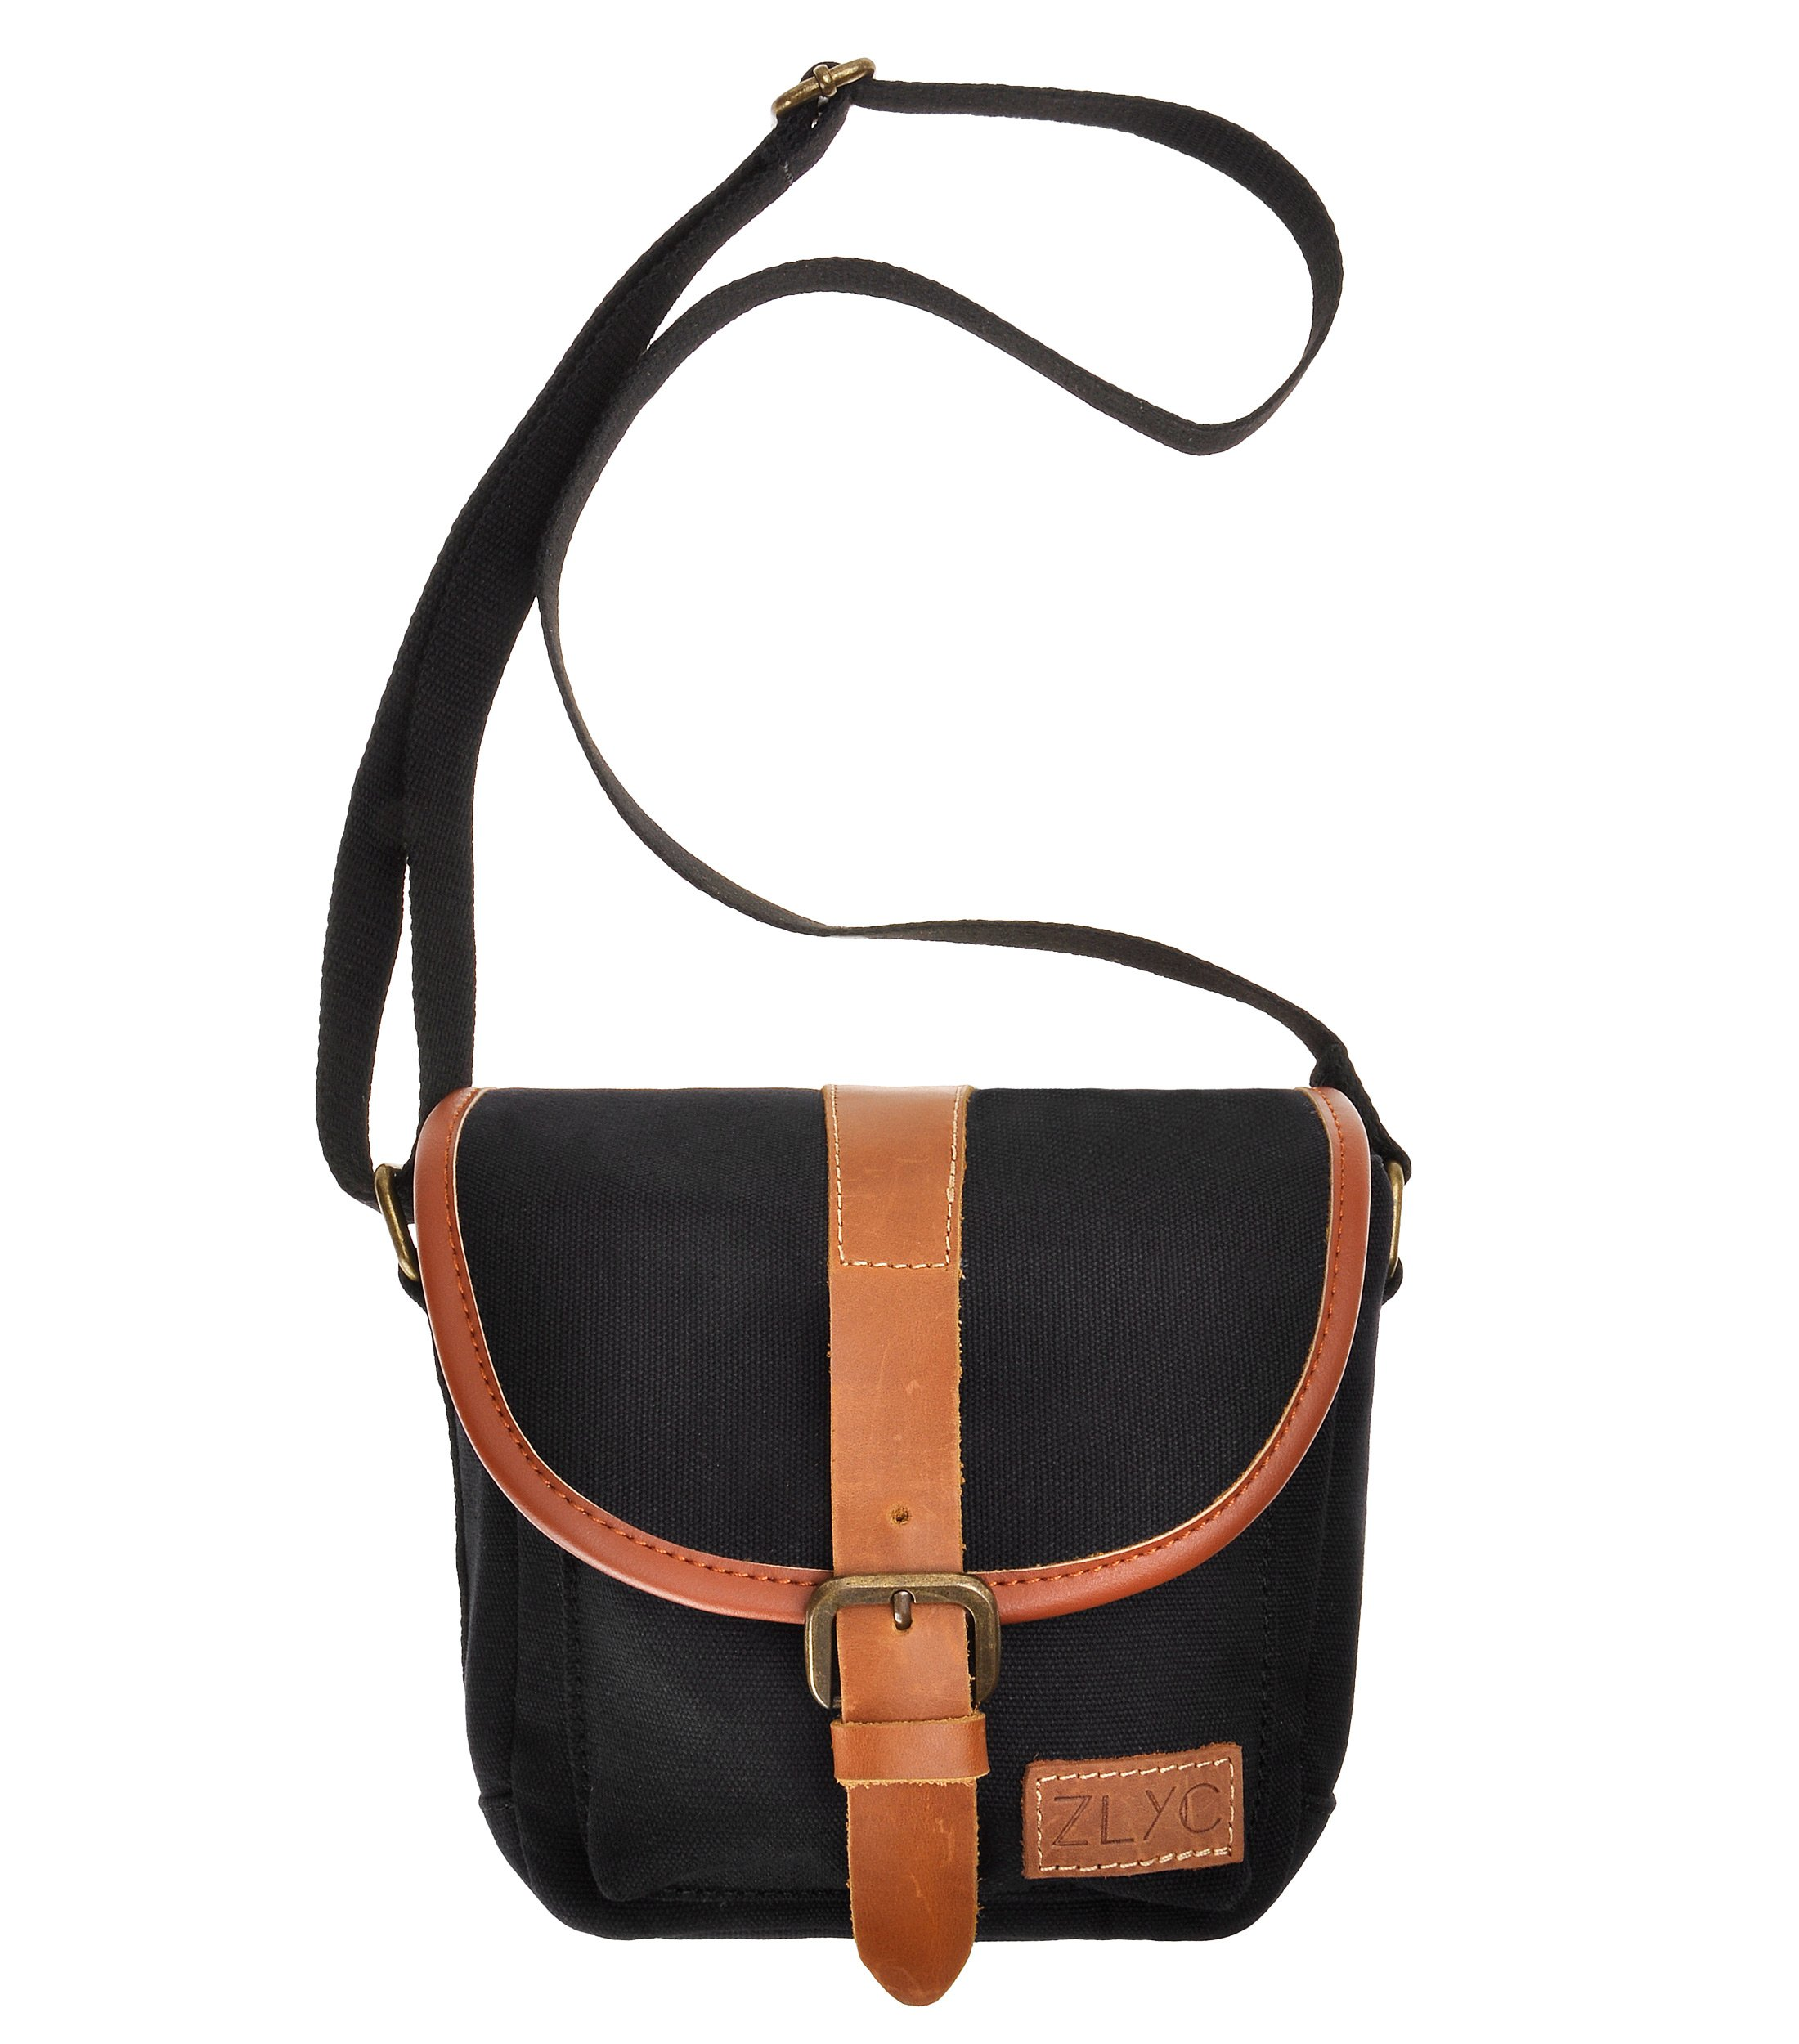 Canvas Camera Case ZLYC Leather Trim Mirrorless Bag Small Padded Shockproof Pouch Vintage Shoulder Purse Satchel for Women Men, Black